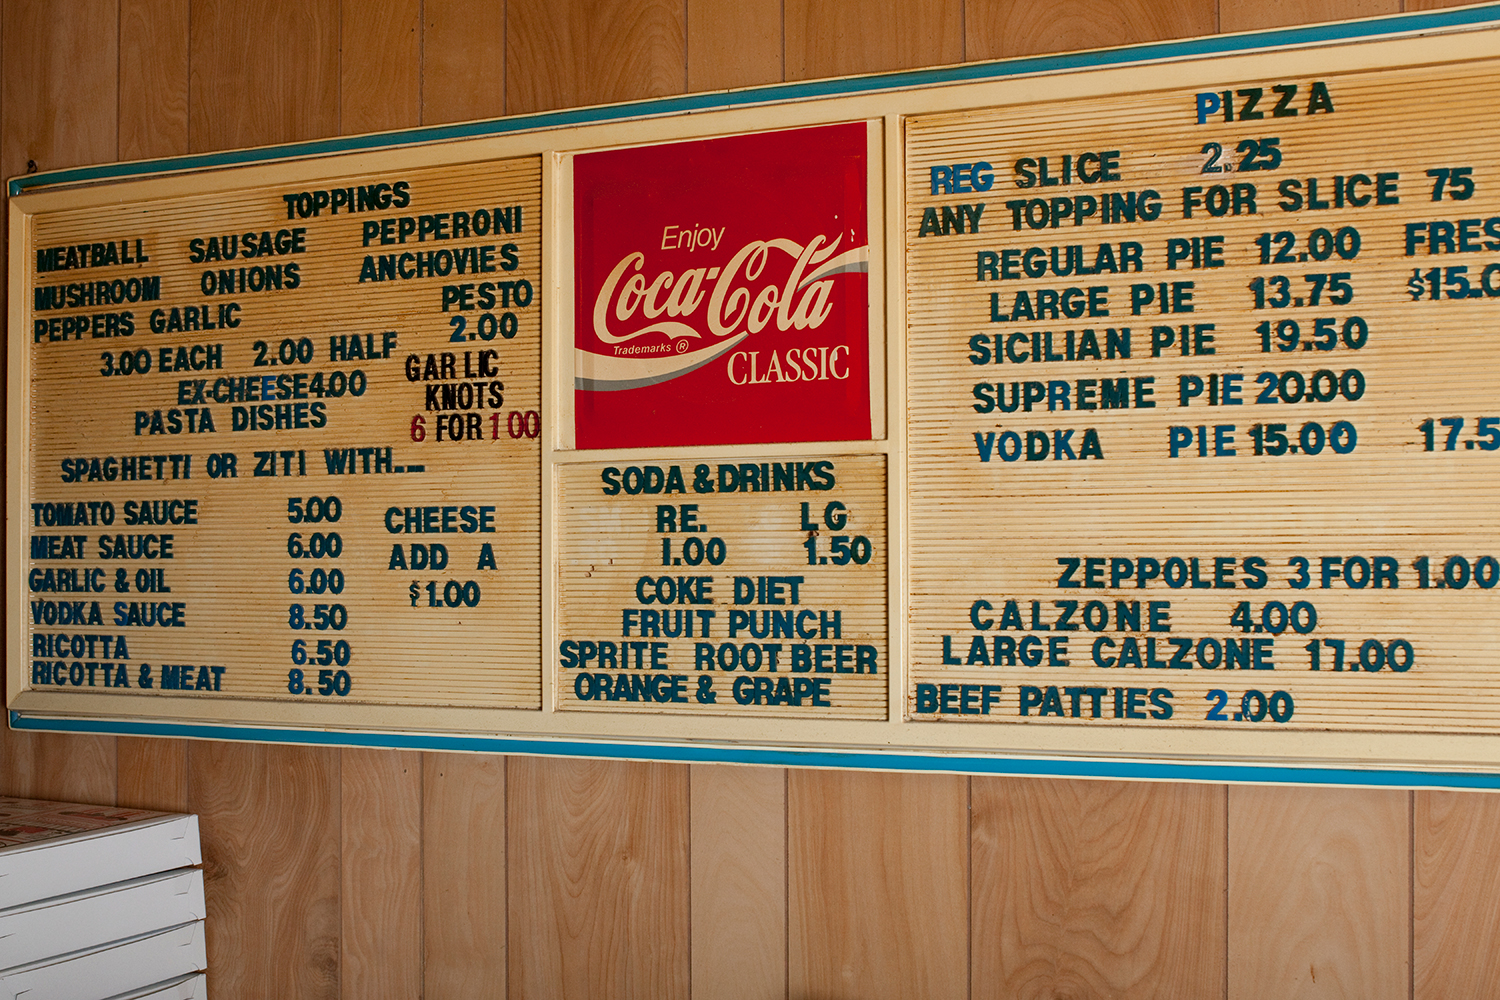 Luigi's replaced this menu sign a couple years ago but has not raised prices.